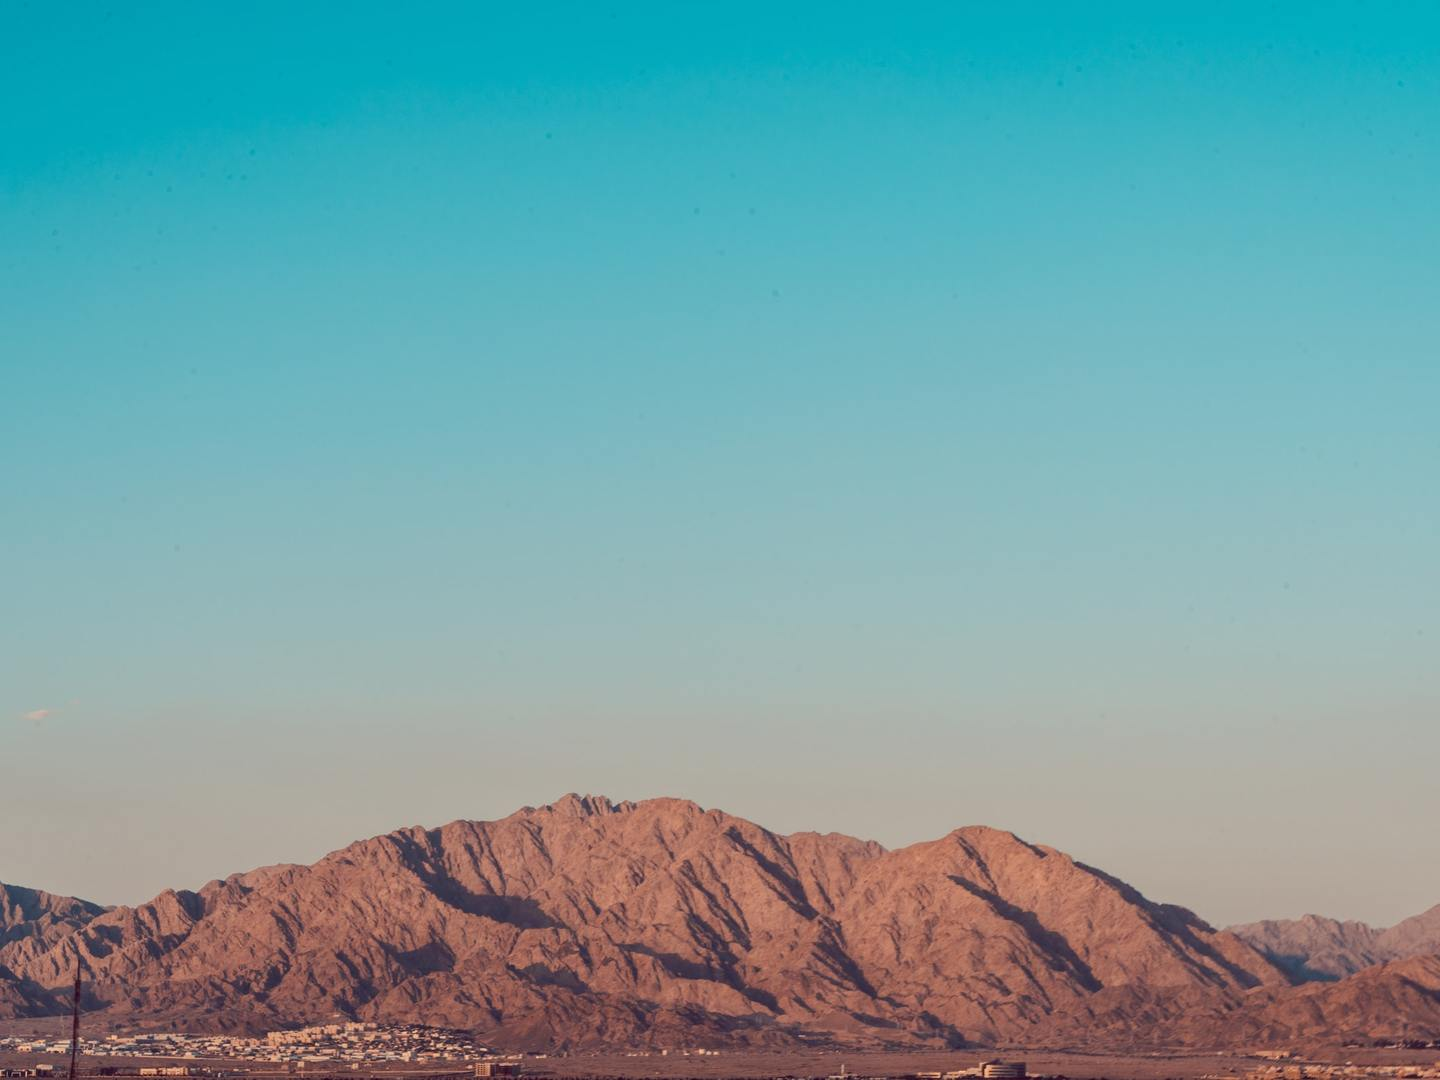 A view of the Edom Mountains in Jordan from Eilat, Israel